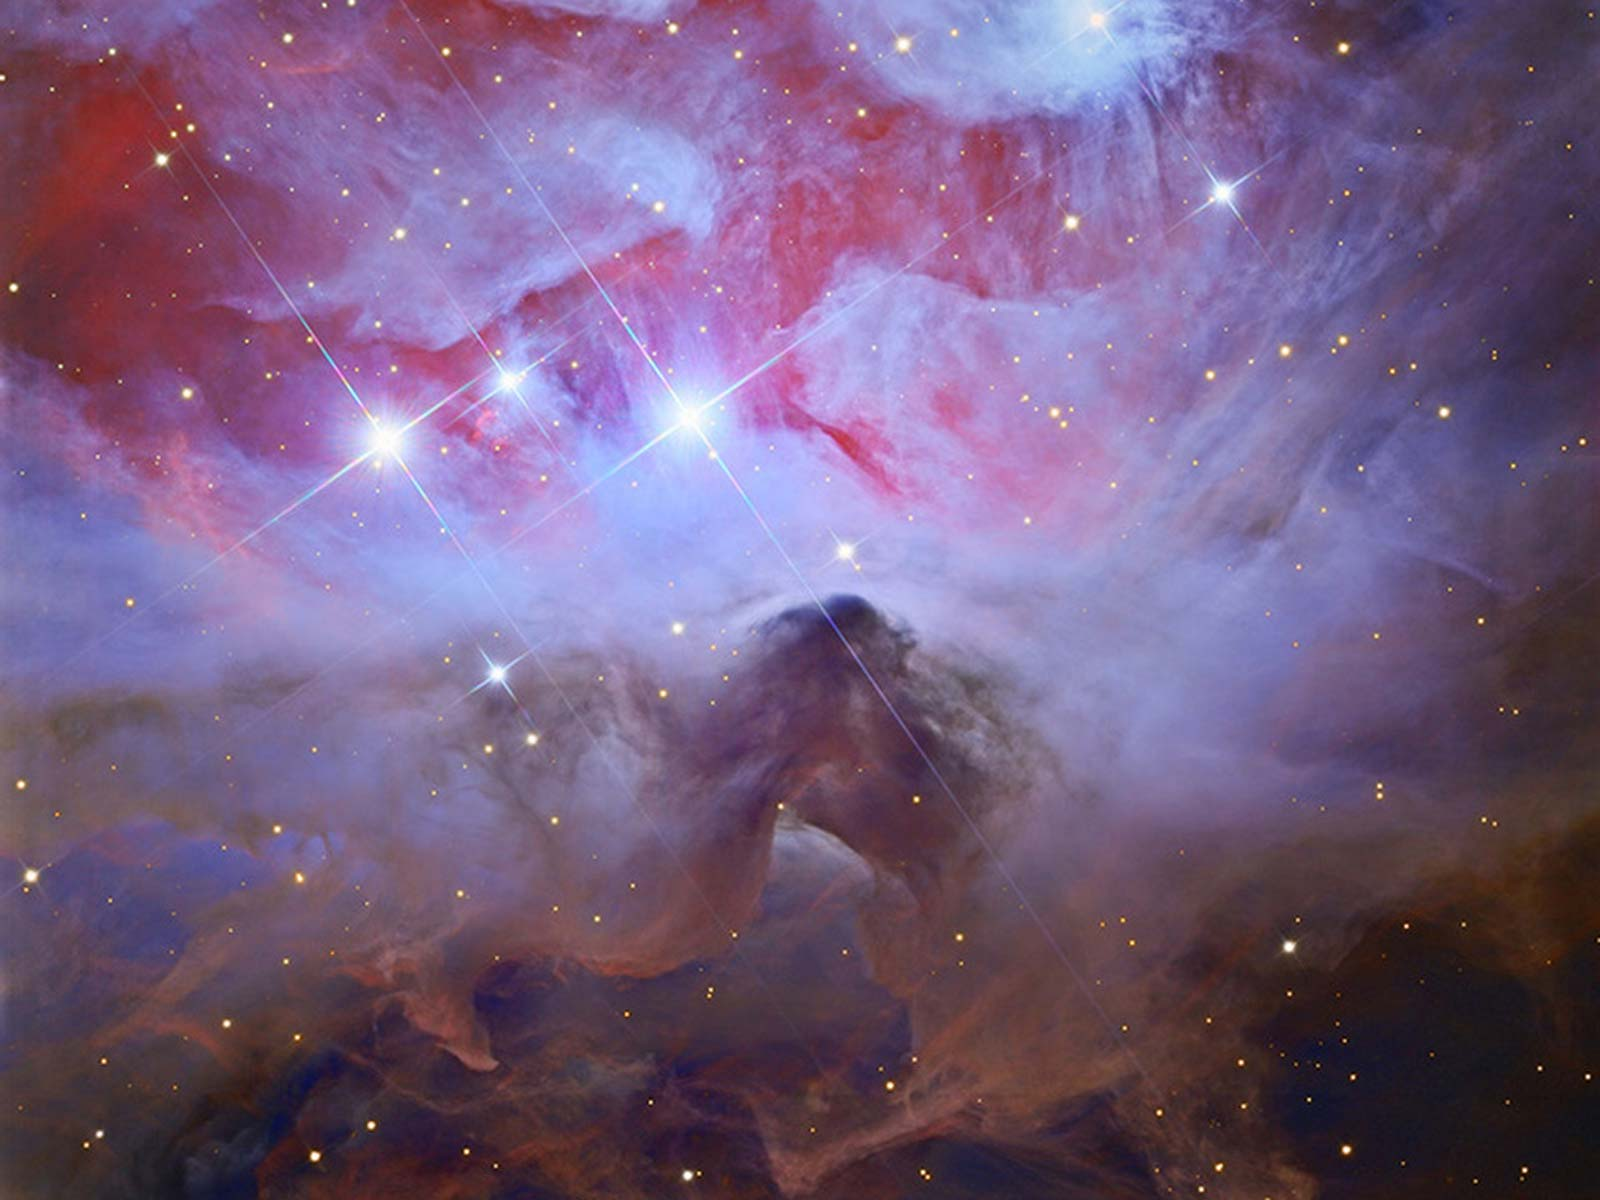 Running from Beauty: A Darker Side of Orion | Space Wallpaper